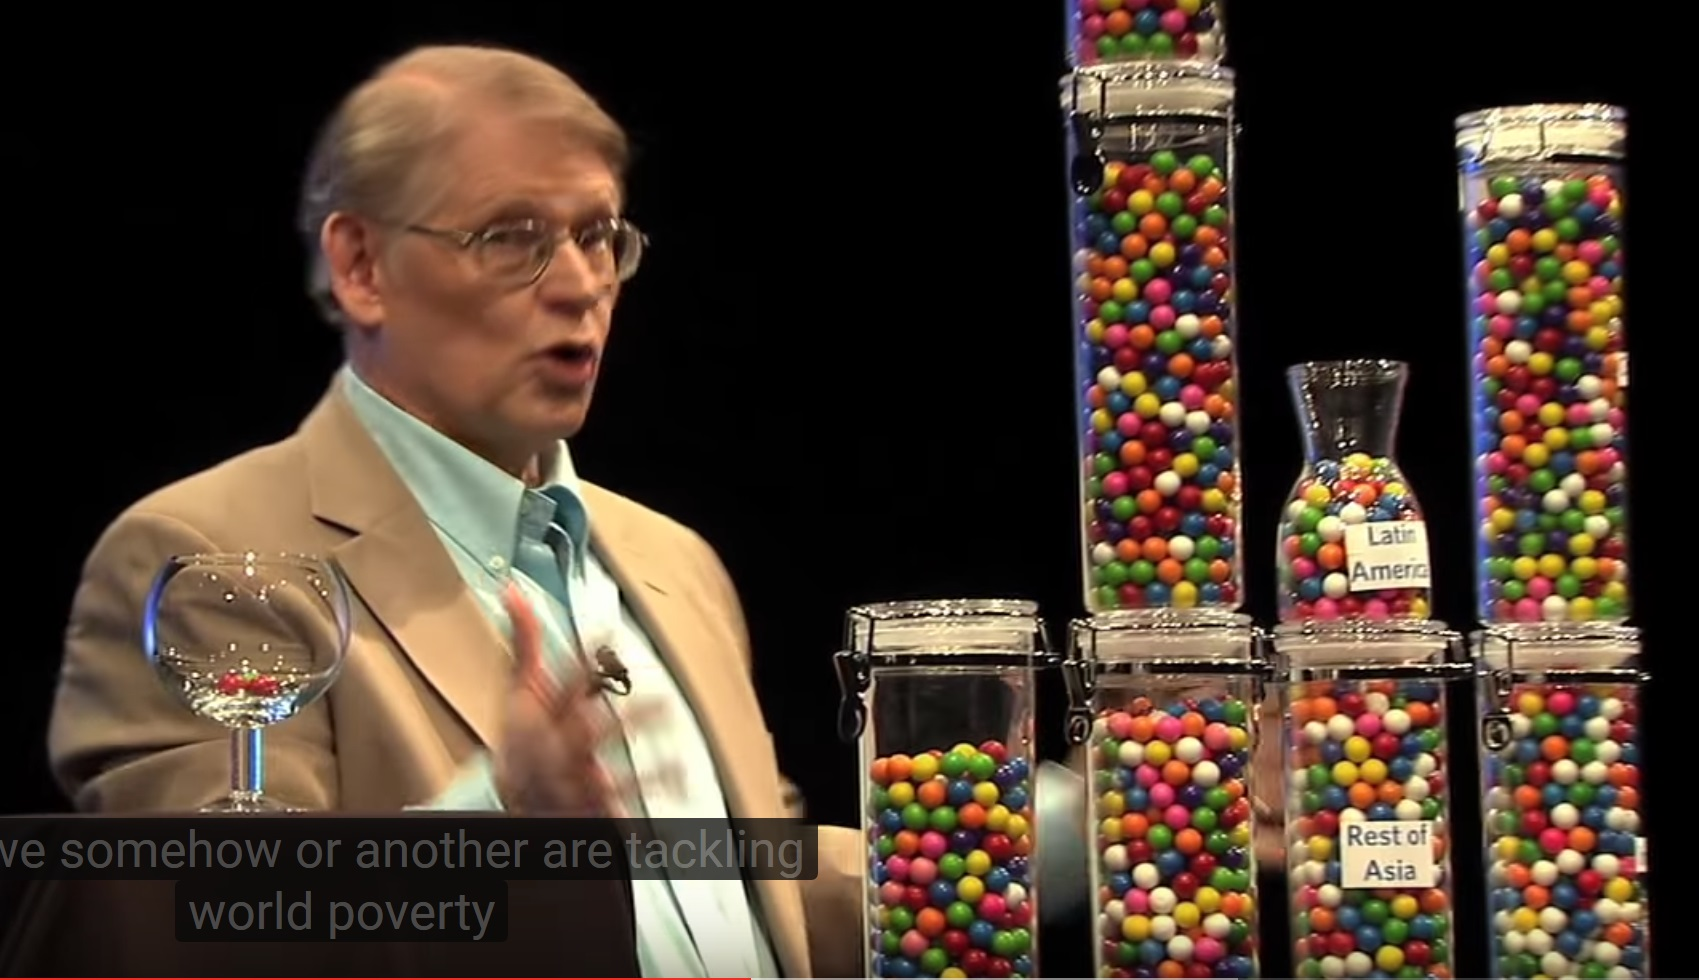 Image: Media's totally false narrative about refugees demolished by simple visual demonstration involving GUMBALLS (video)